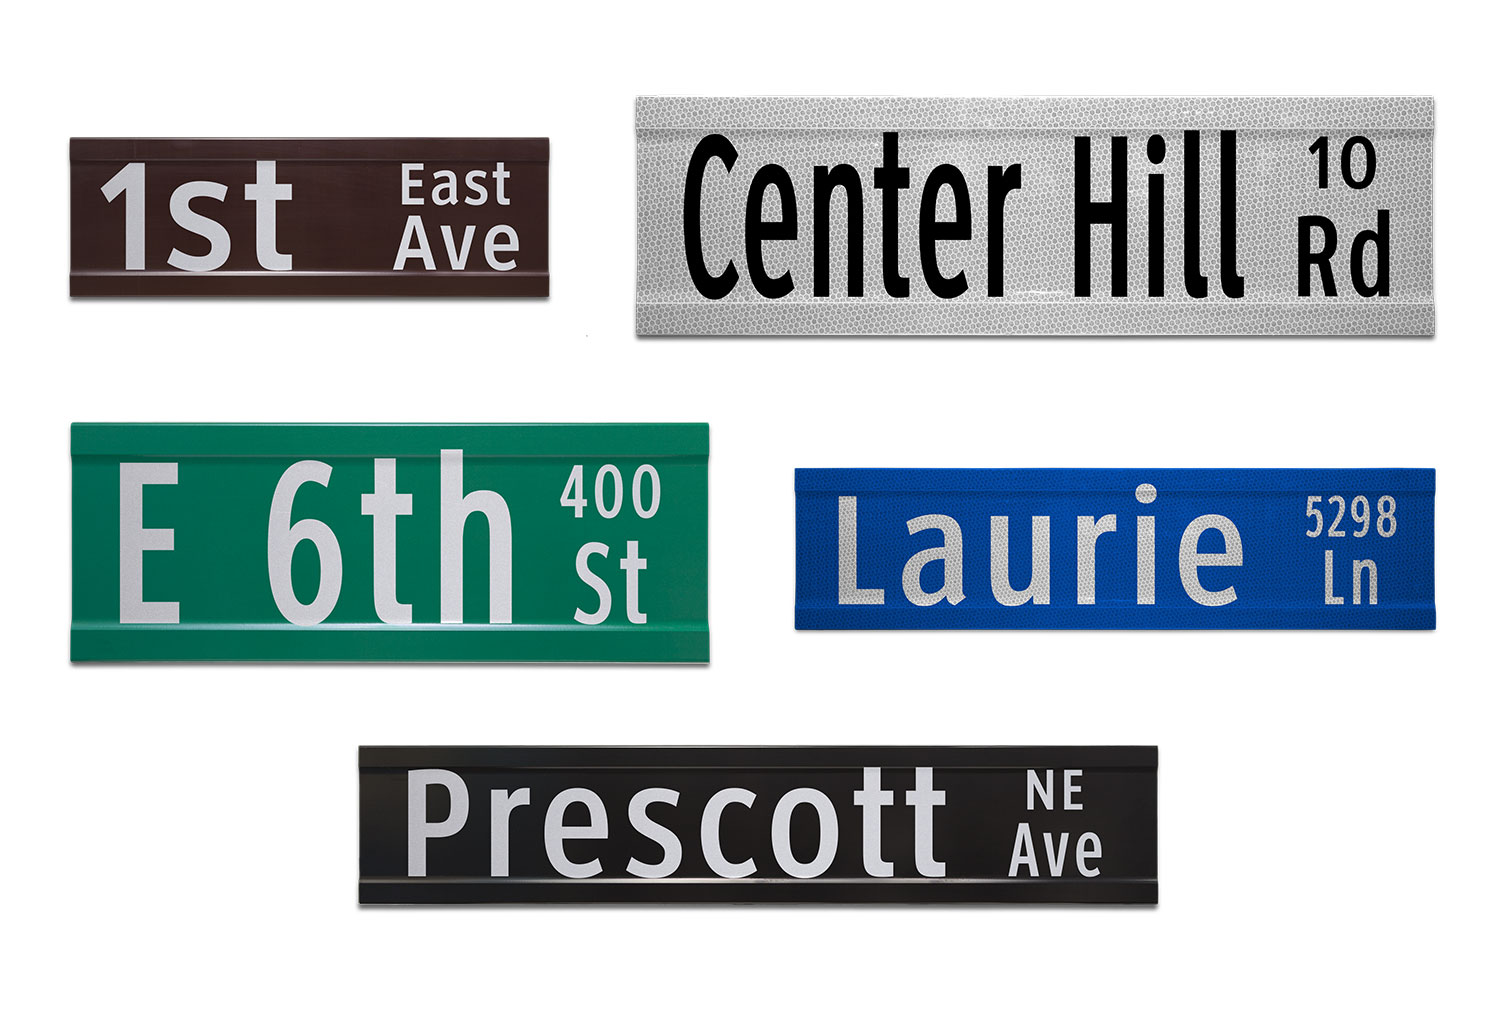 Samples of Printed Extruded Blade Signs with Street Numbers